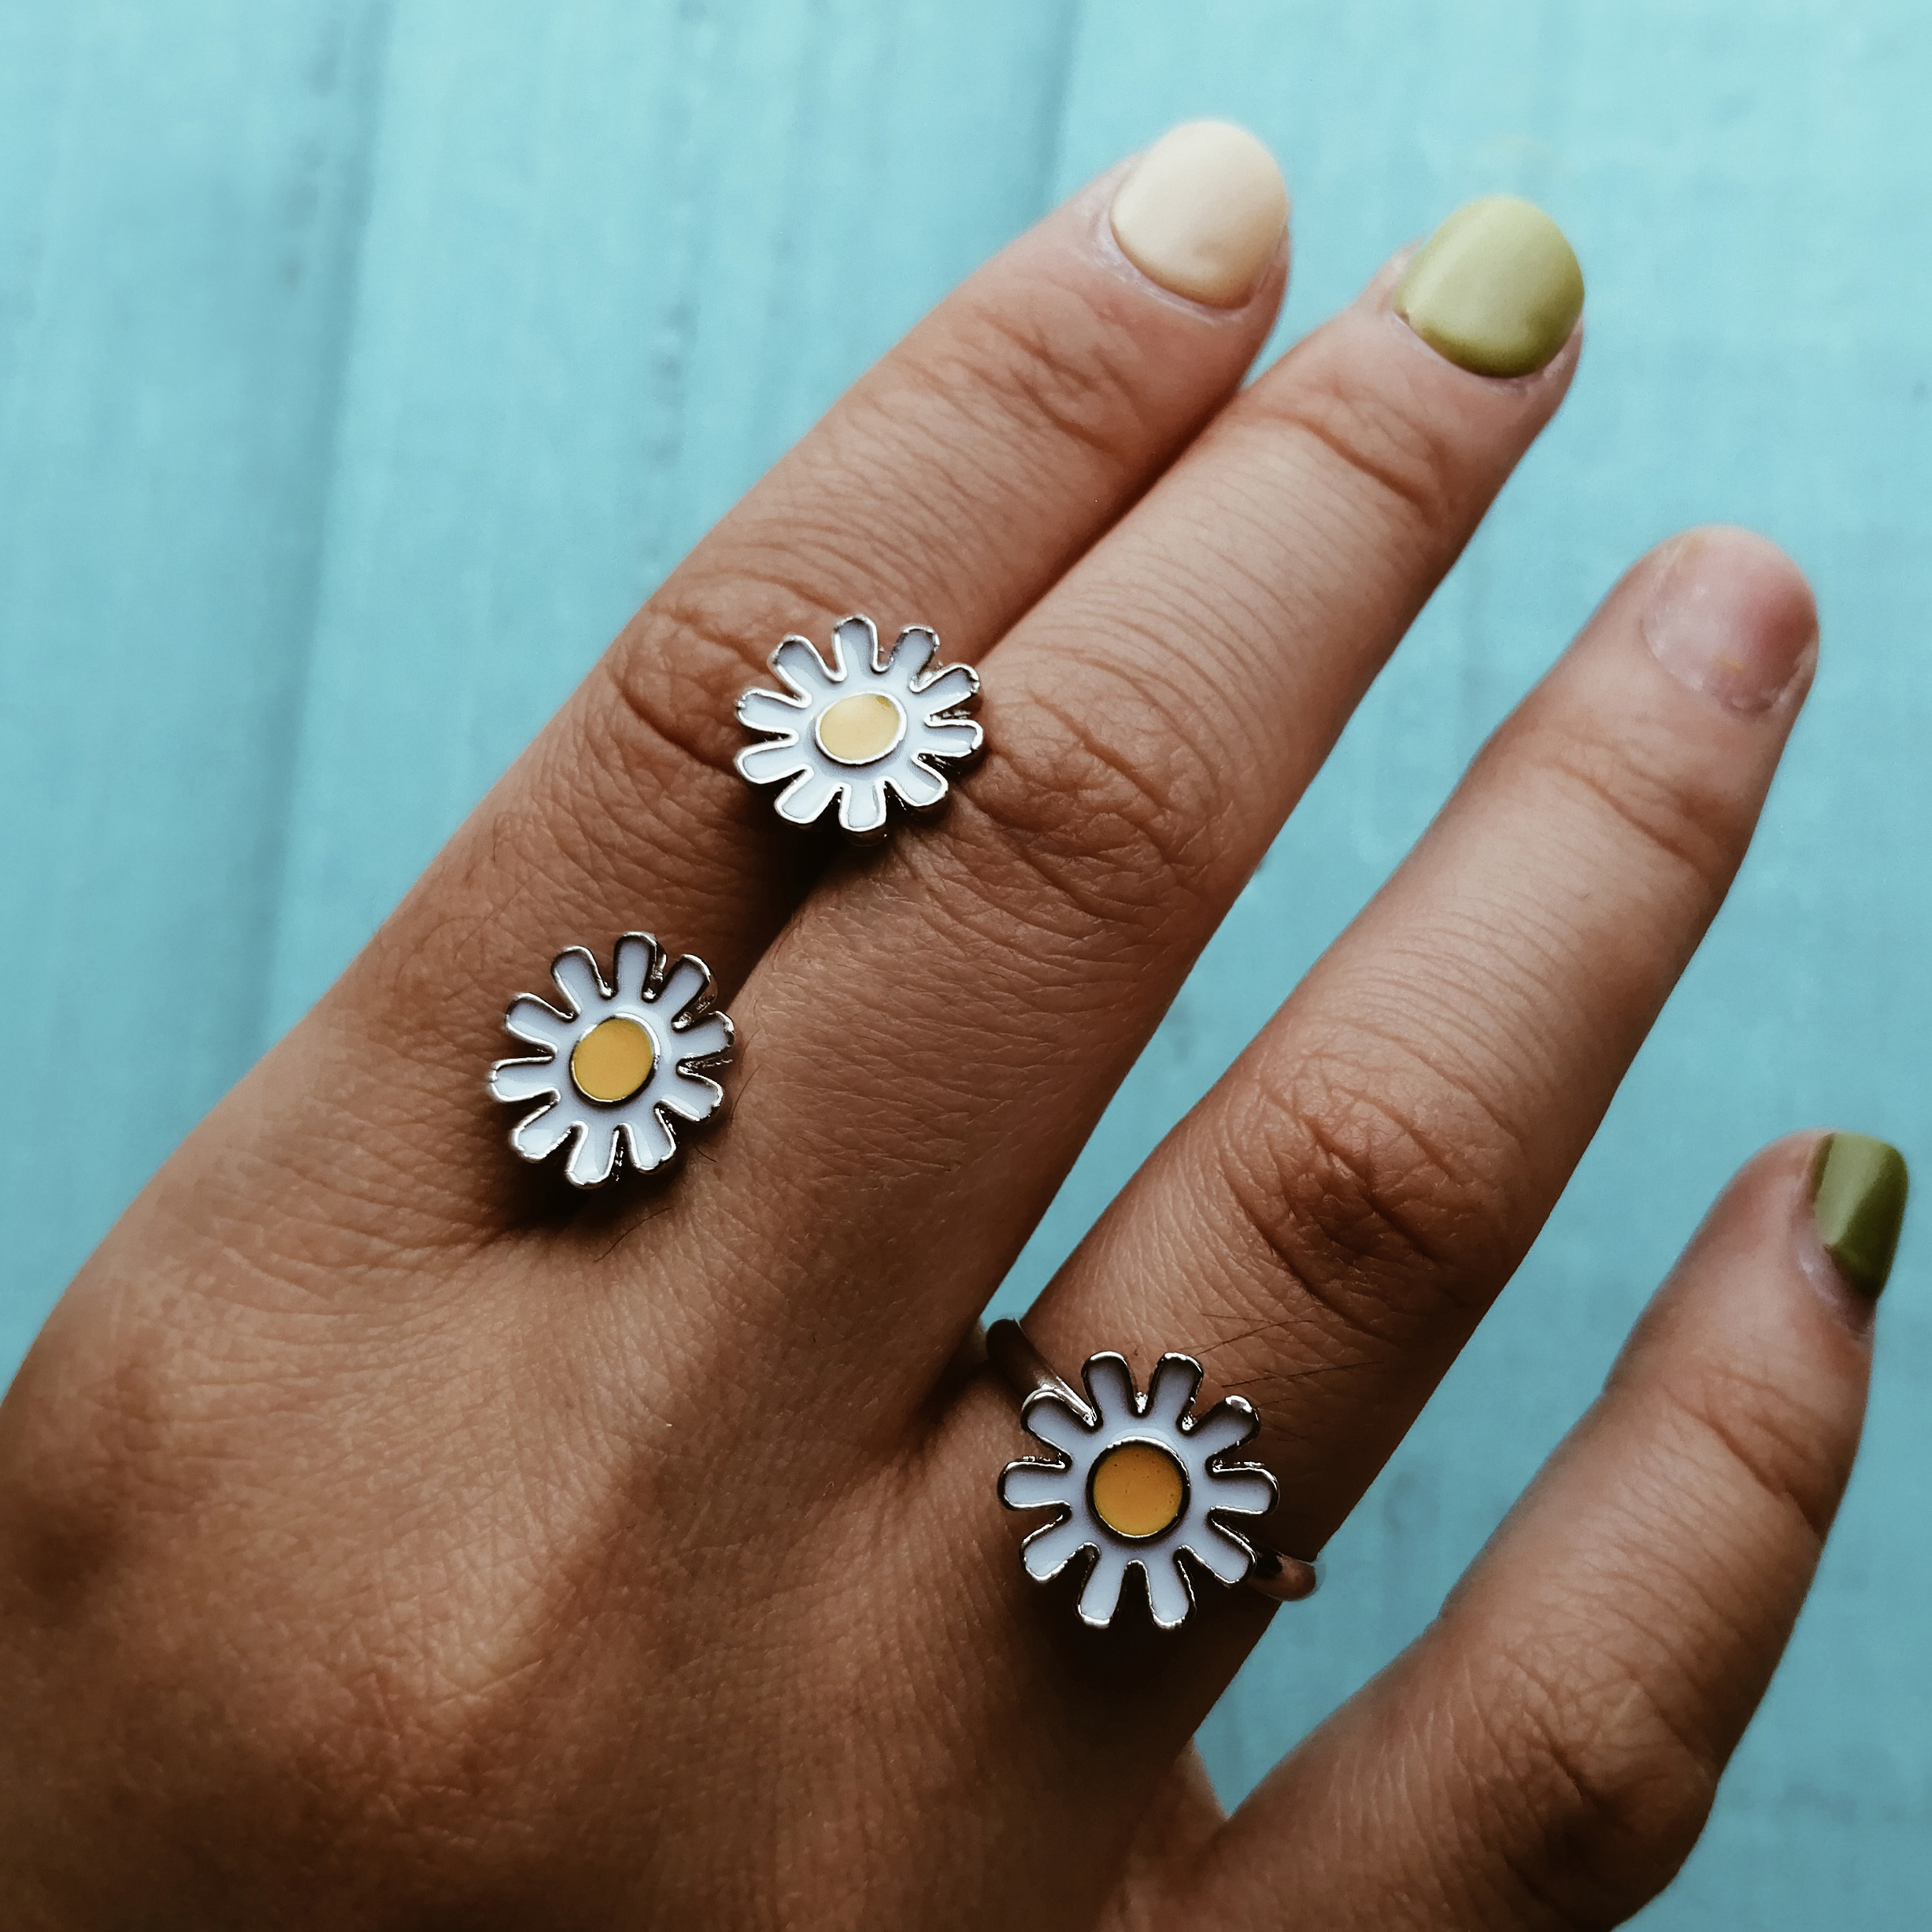 17KM Flower Rings For Women Vintage Adjustable Opening Ring 2019 Female Flower Jewelry Personalized Party Accessories